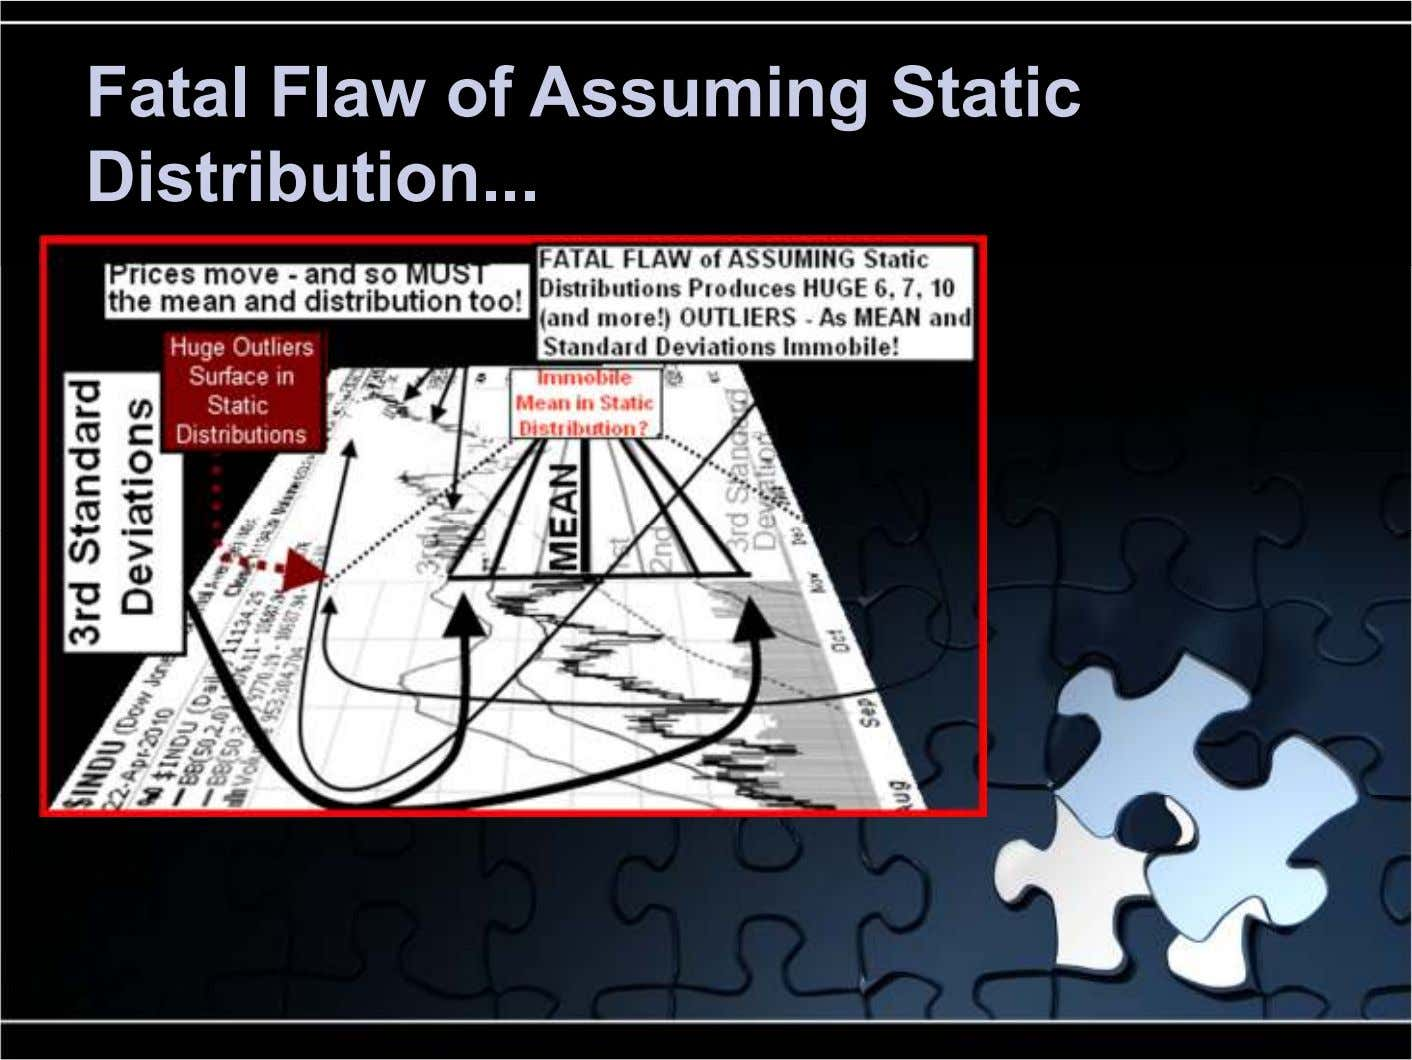 Fatal Flaw of Assuming Static Distribution ...